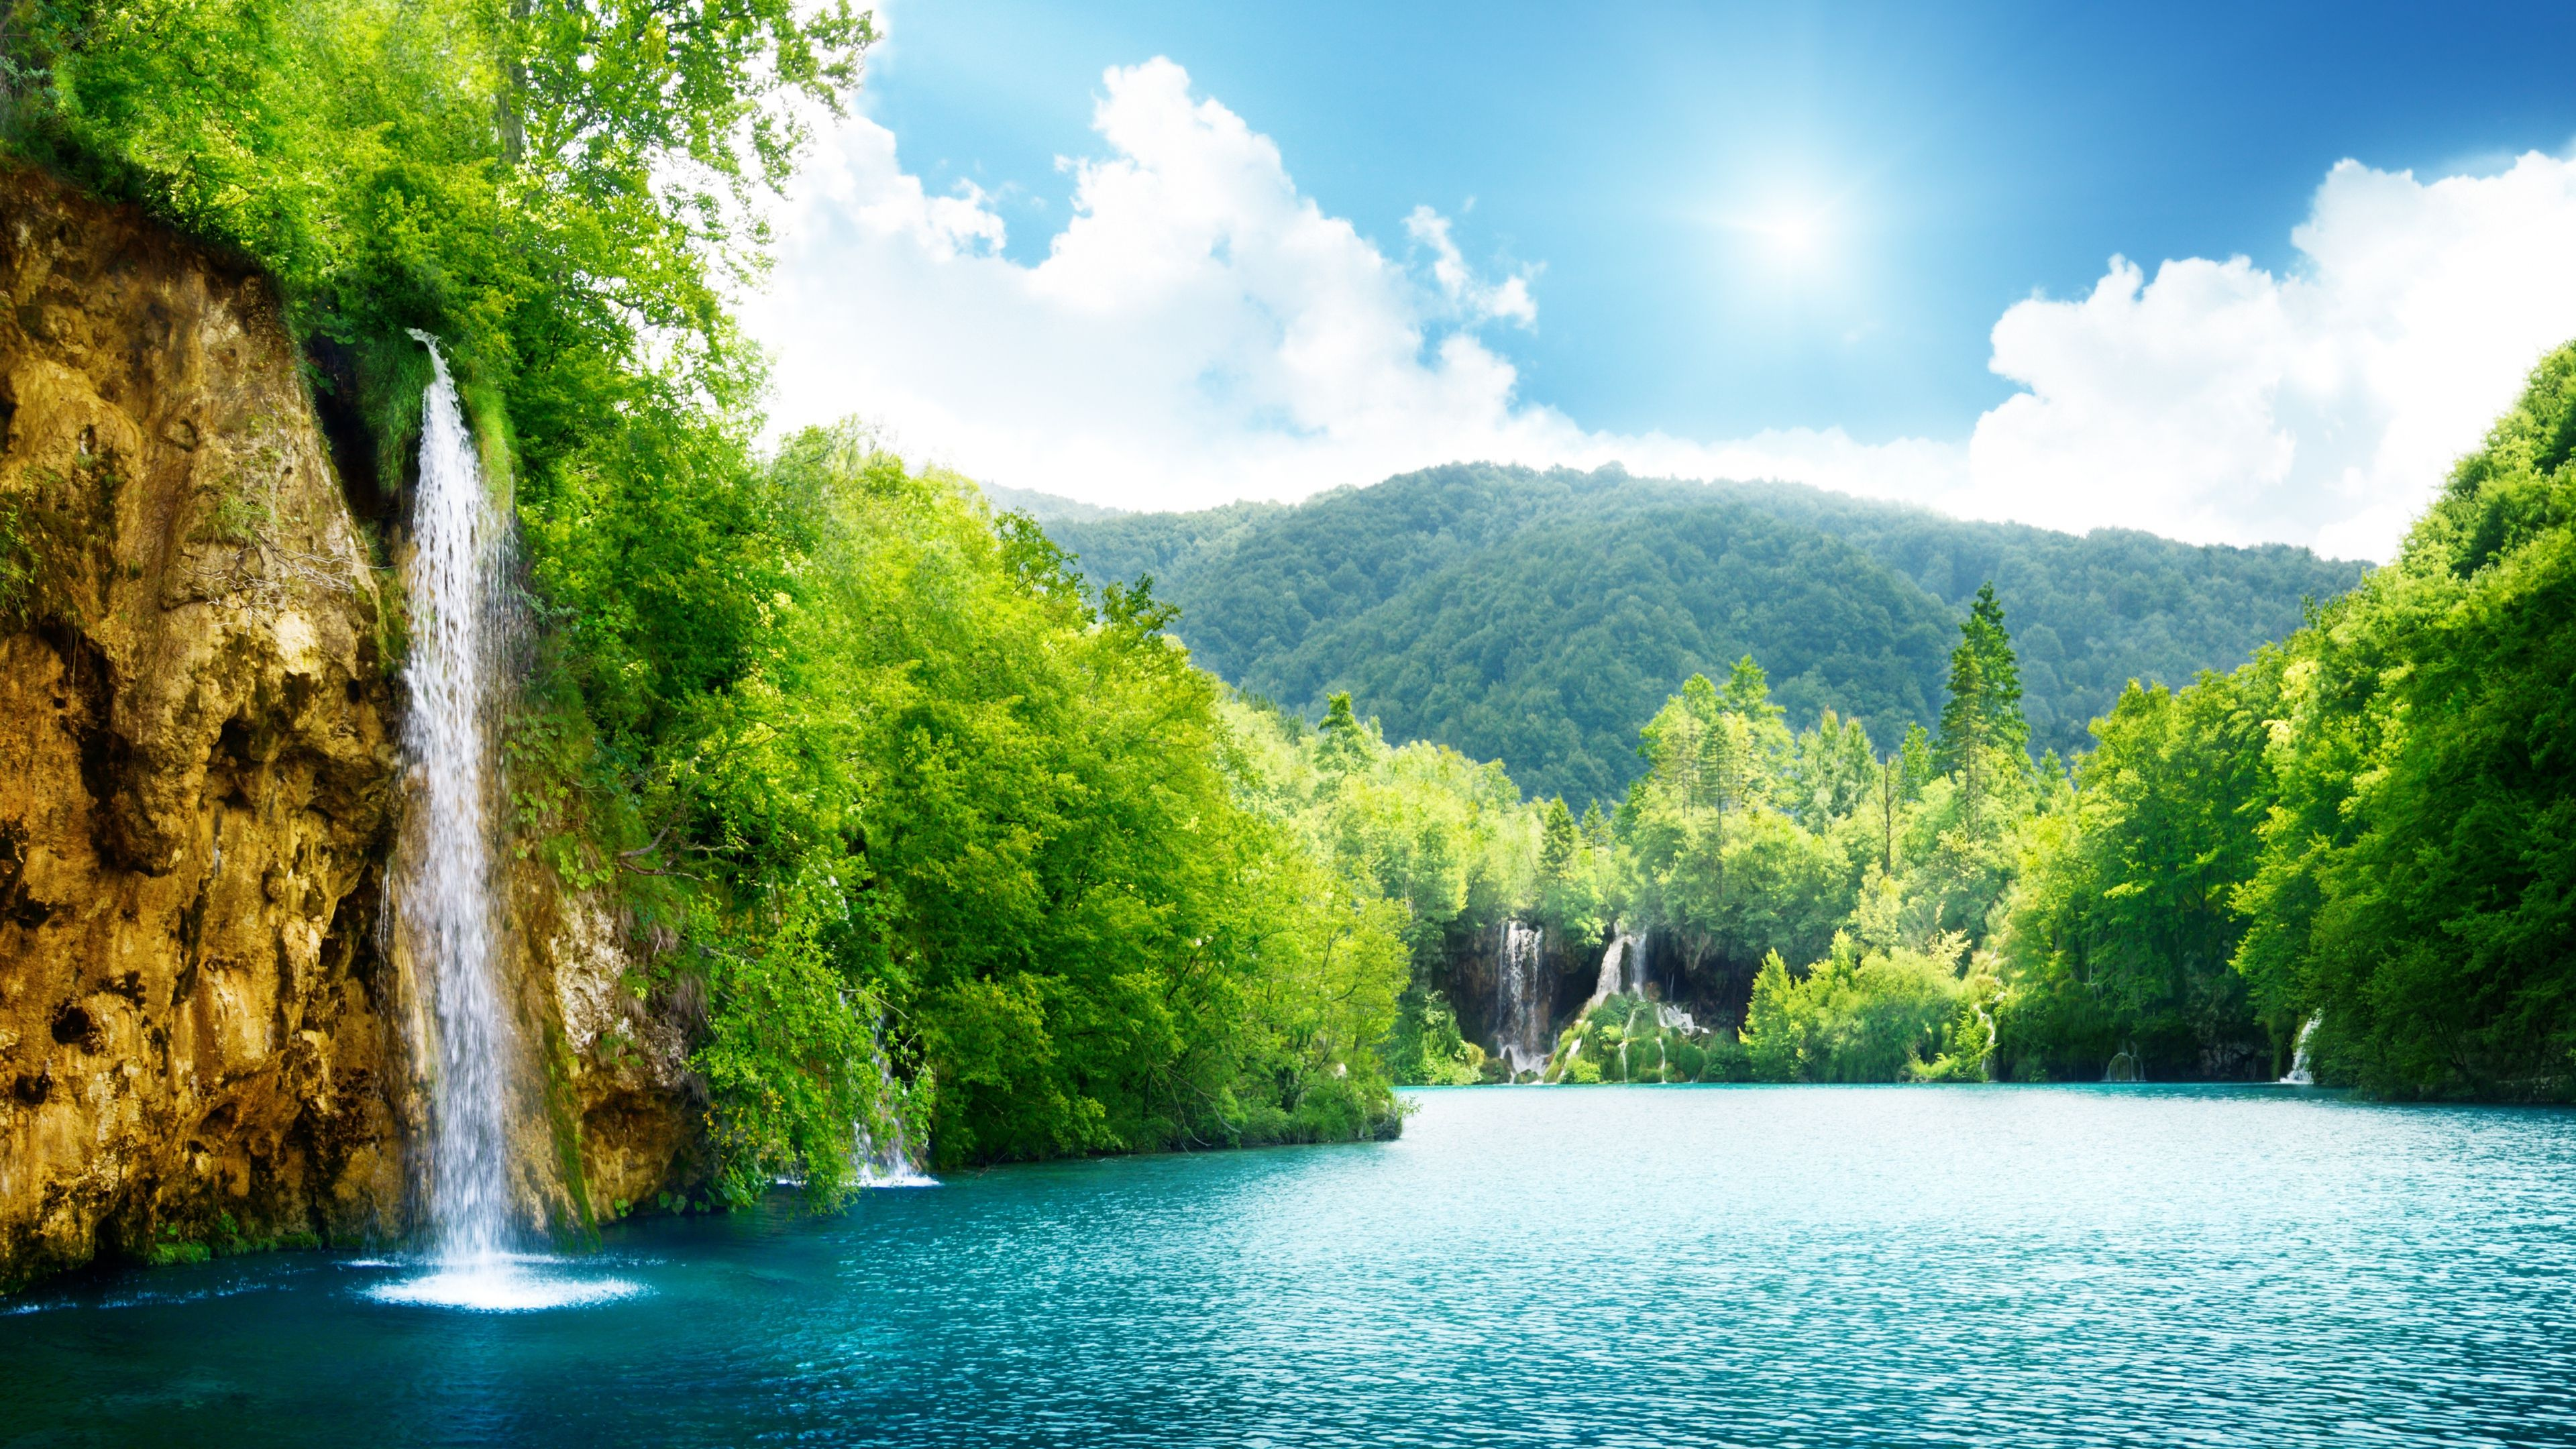 What Is Your Nature Name Waterfall Wallpaper Scenery Wallpaper